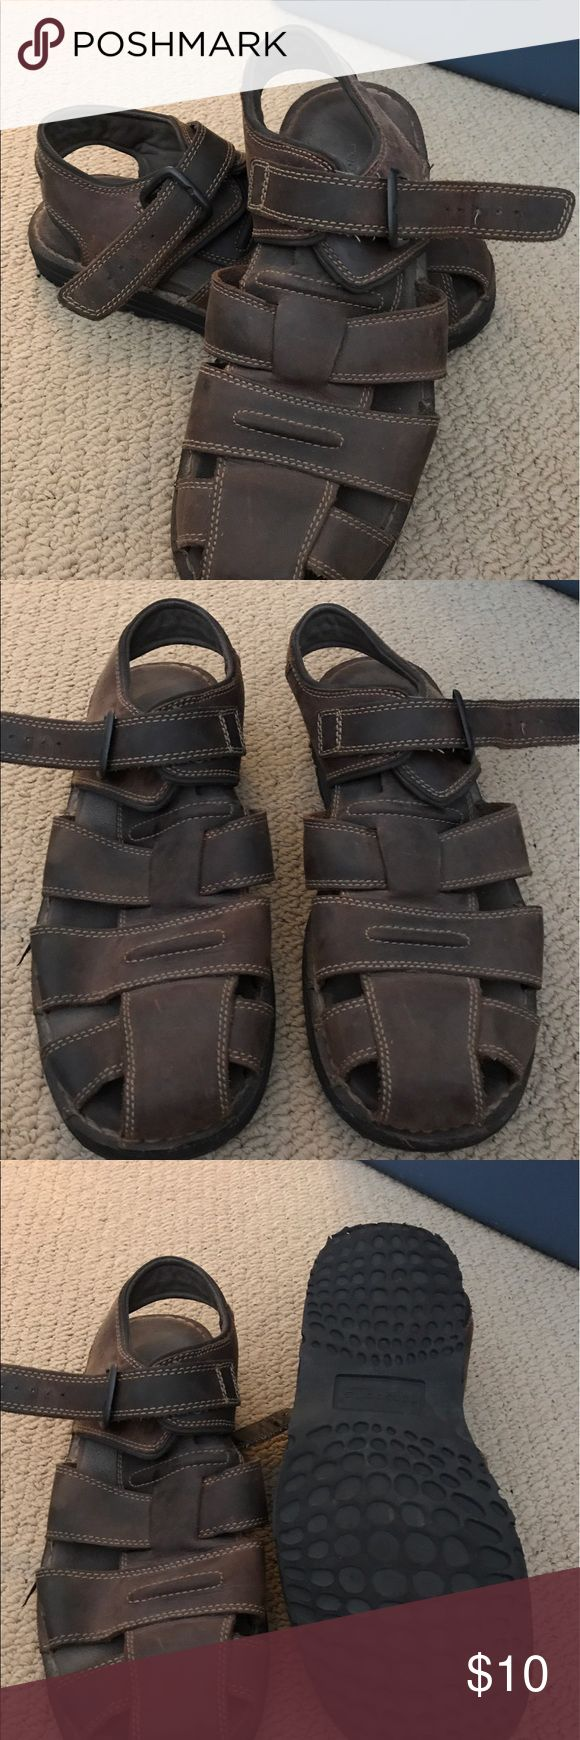 Like NEW * Sandals by Rockport, Size 10, NICE! Like NEW * Sandals by Rockport, Size 10, NICE! Color: Brown. Weather look all Leather. Buckle close. Worn twice. NICE! Rockport Shoes Sandals & Flip-Flops